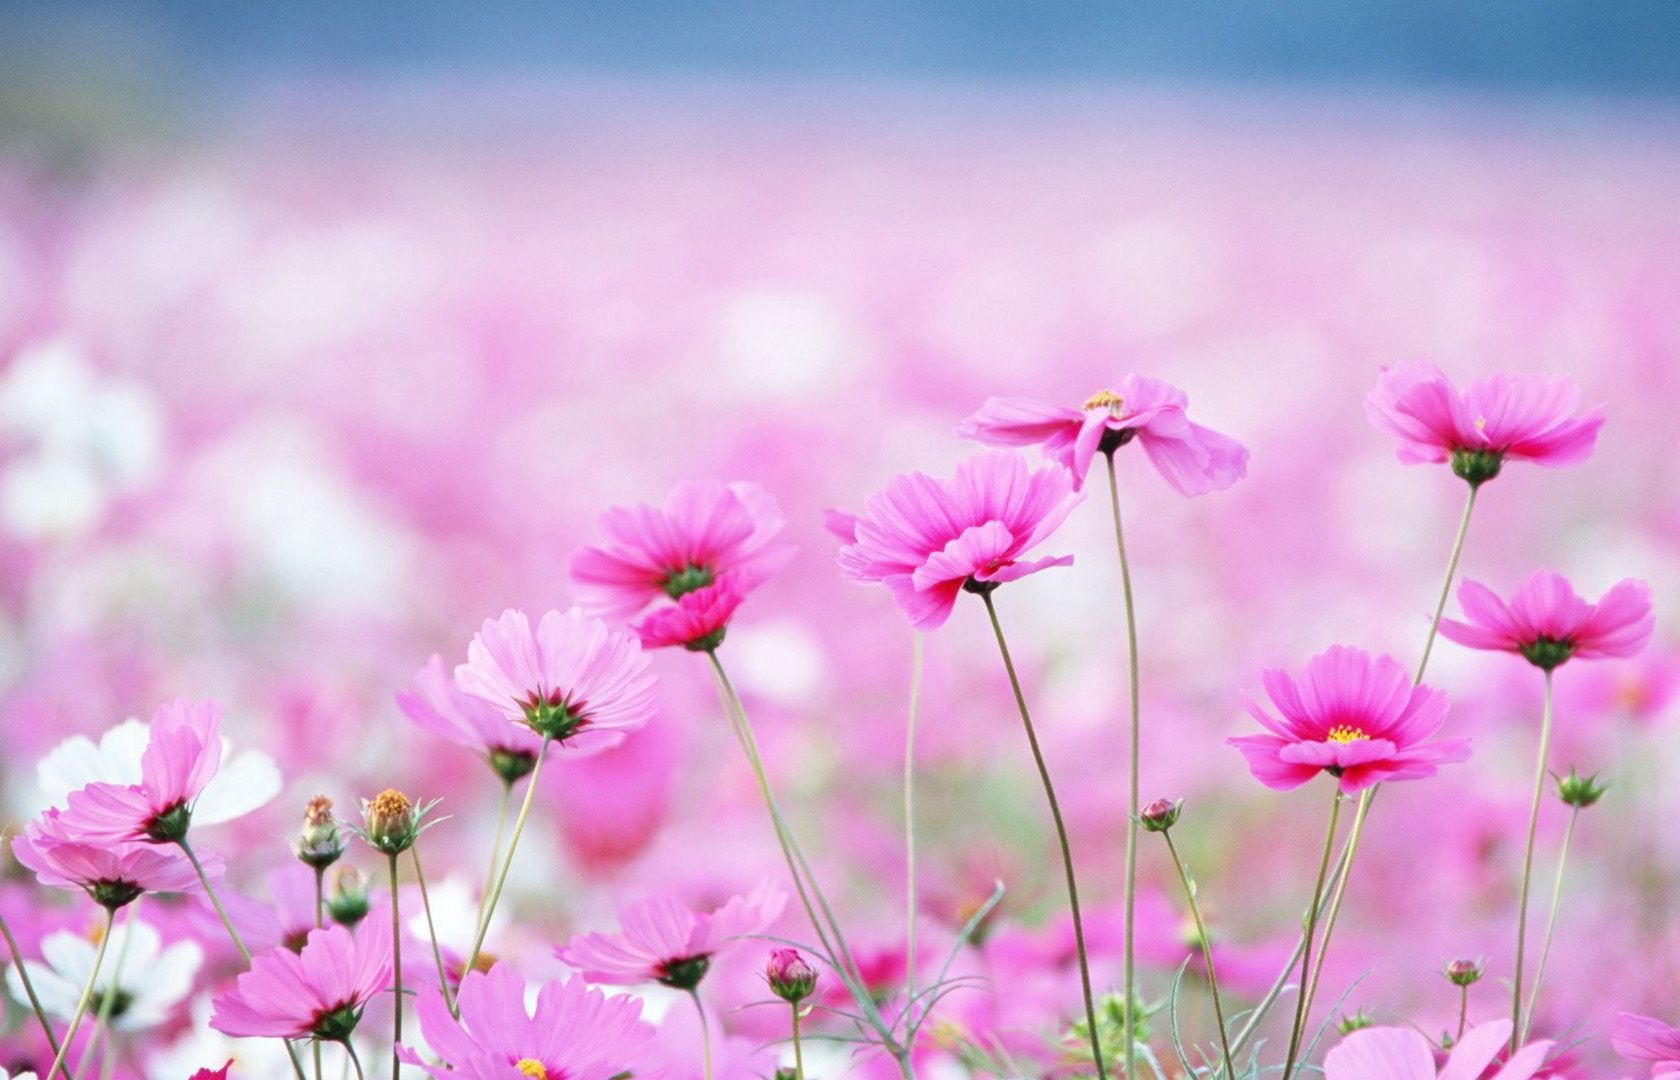 40 beautiful flower wallpapers free to download | flowers